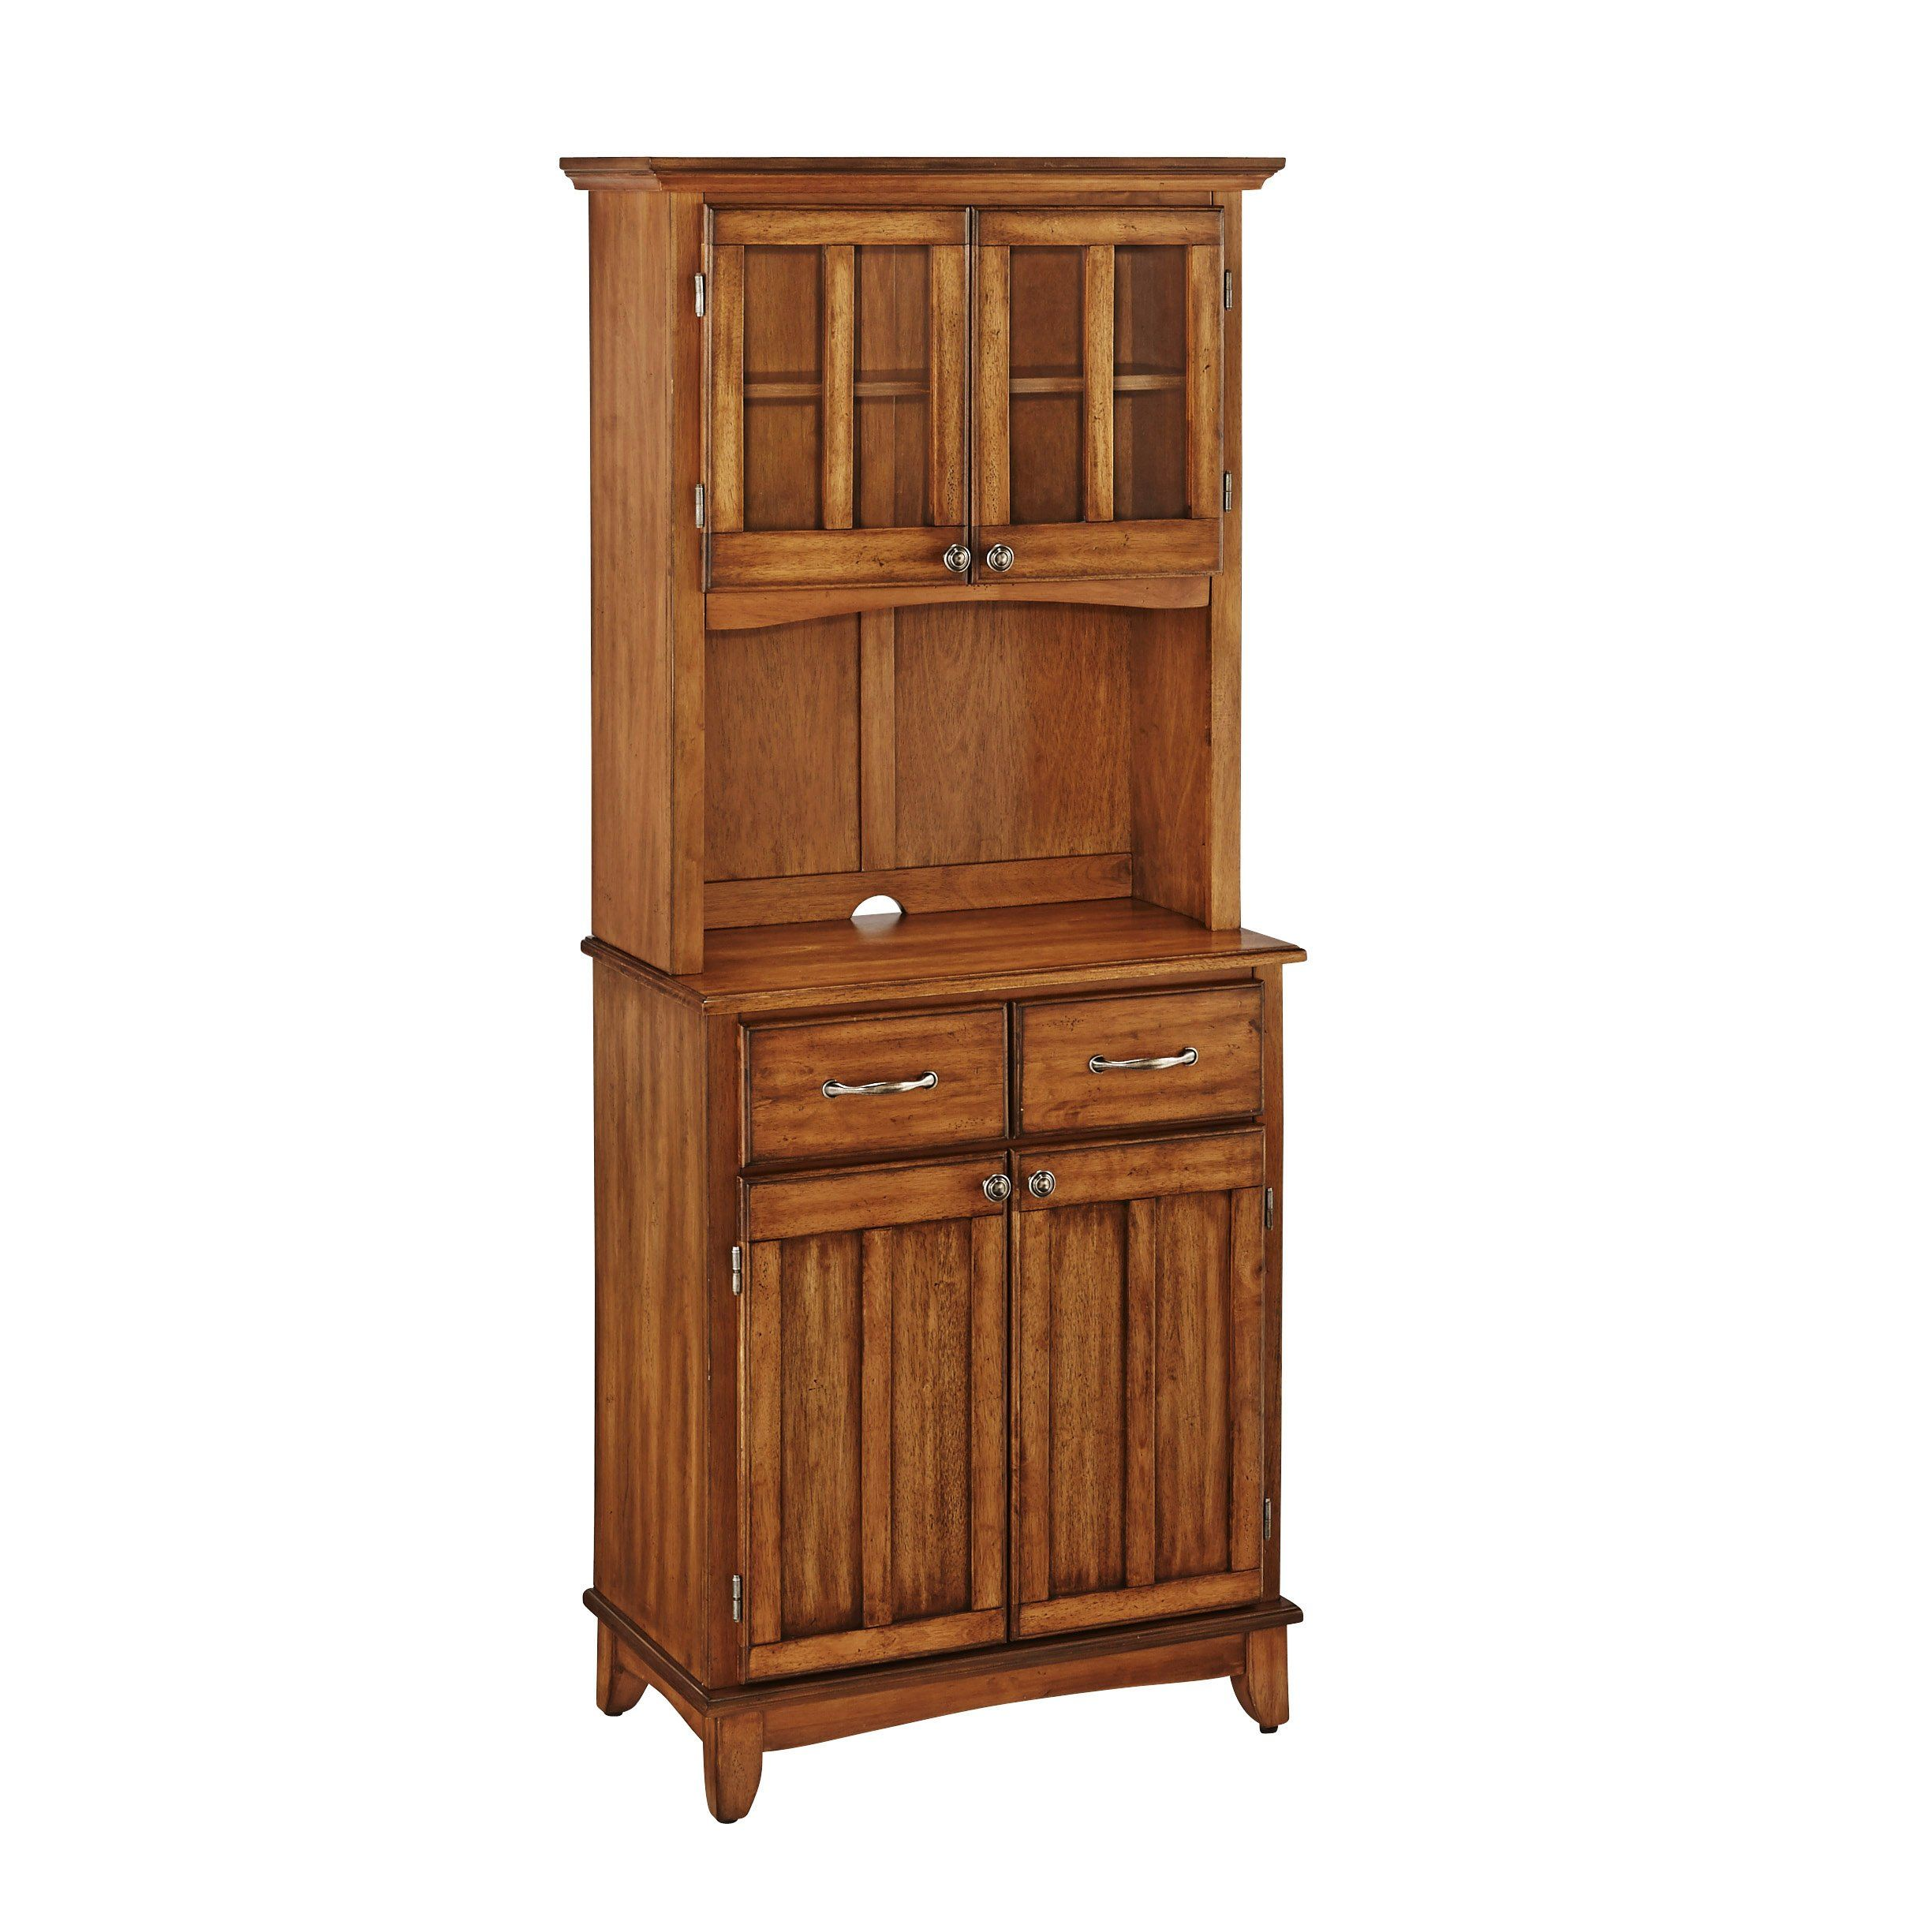 Home Styles 5001-0066-62 5001 Series Cottage Oak Wood Top